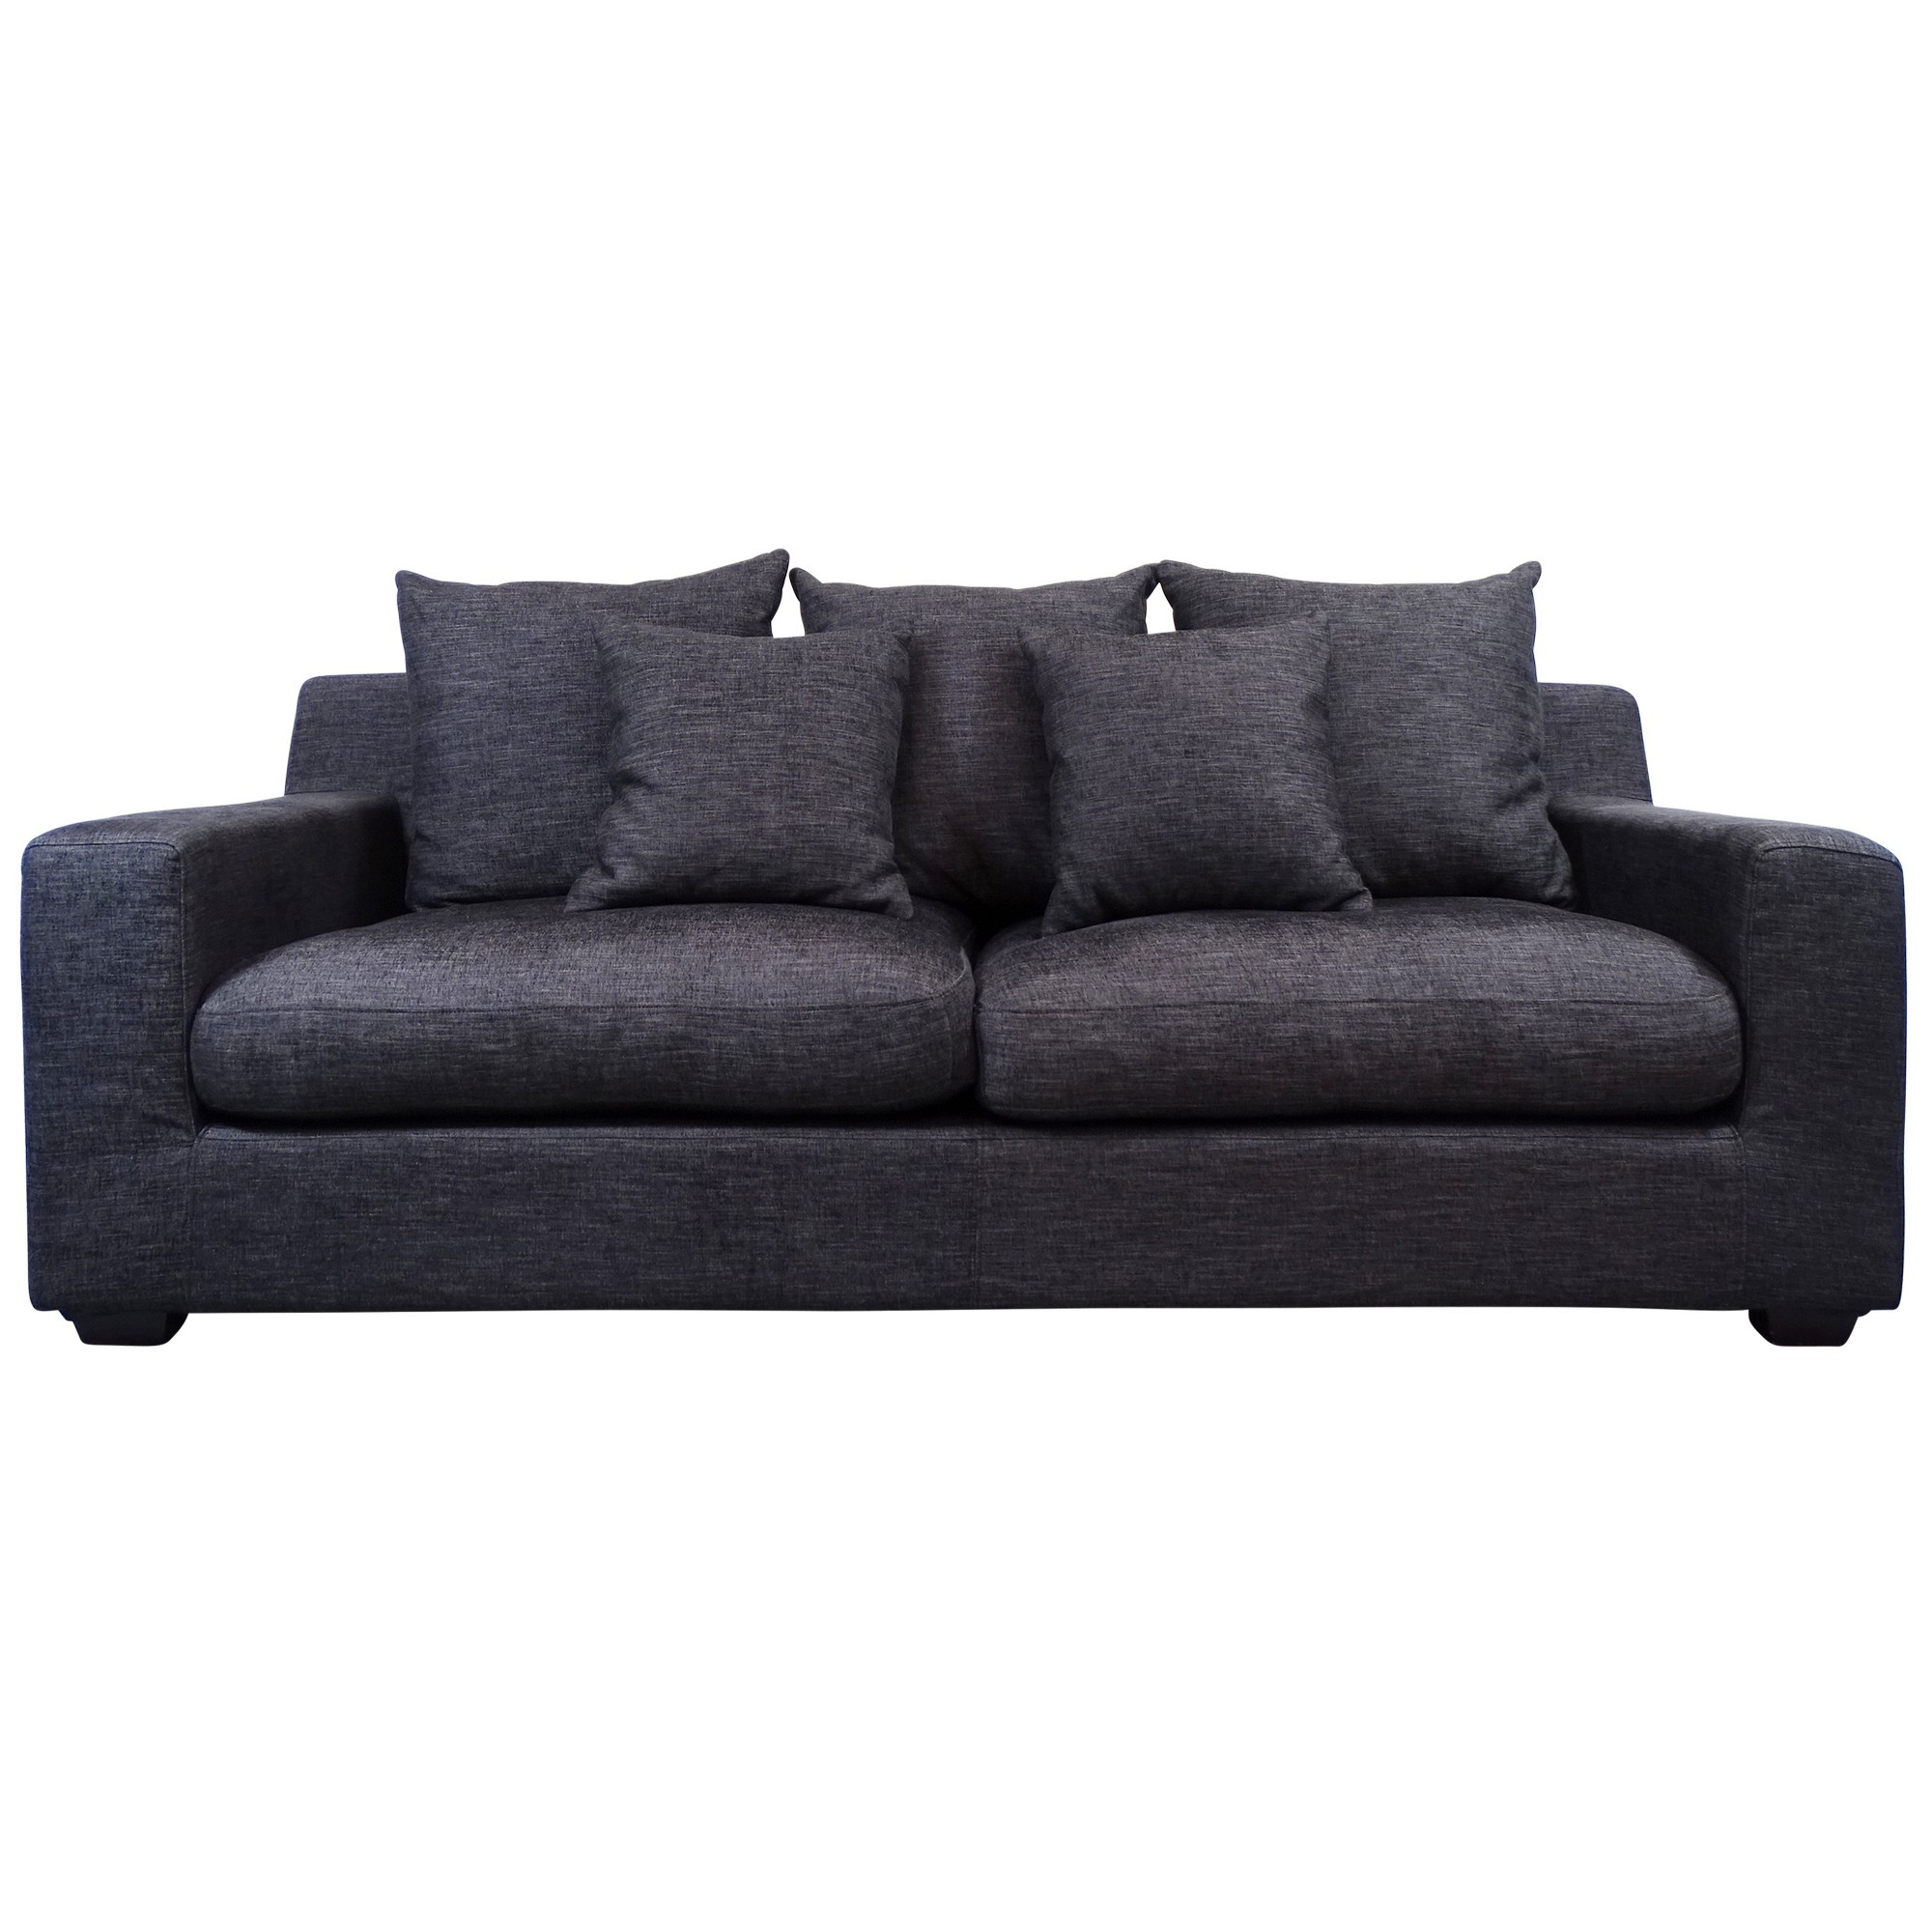 Cynthia Fabric Sofa, 3 Seater, Dark Grey